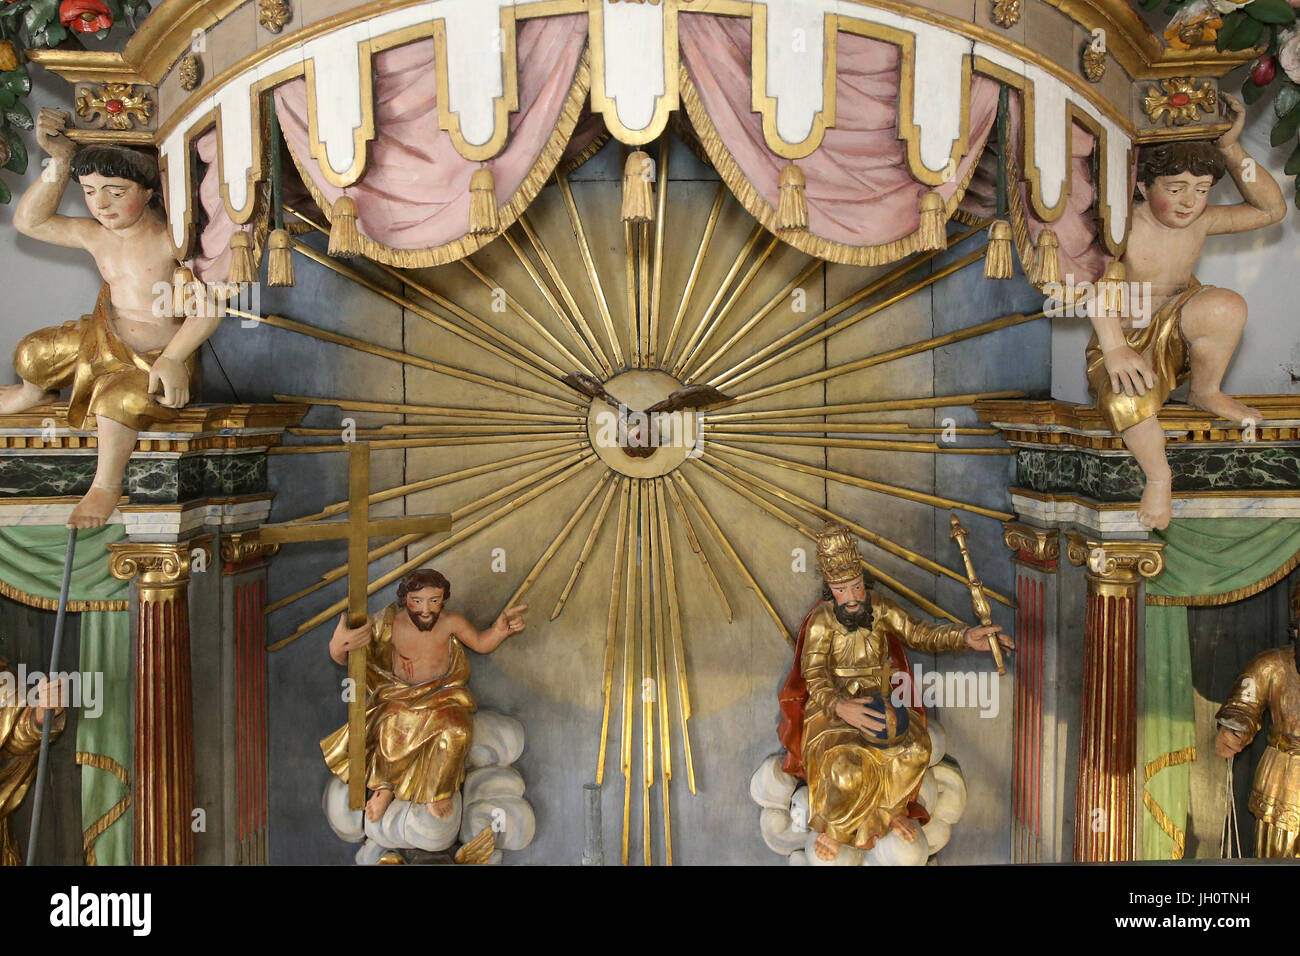 Restoration of Saint Gervais baroque church.  Holy Trinity: God, Jesus Christ,  Holy Spirit.  Paint renovation. - Stock Image